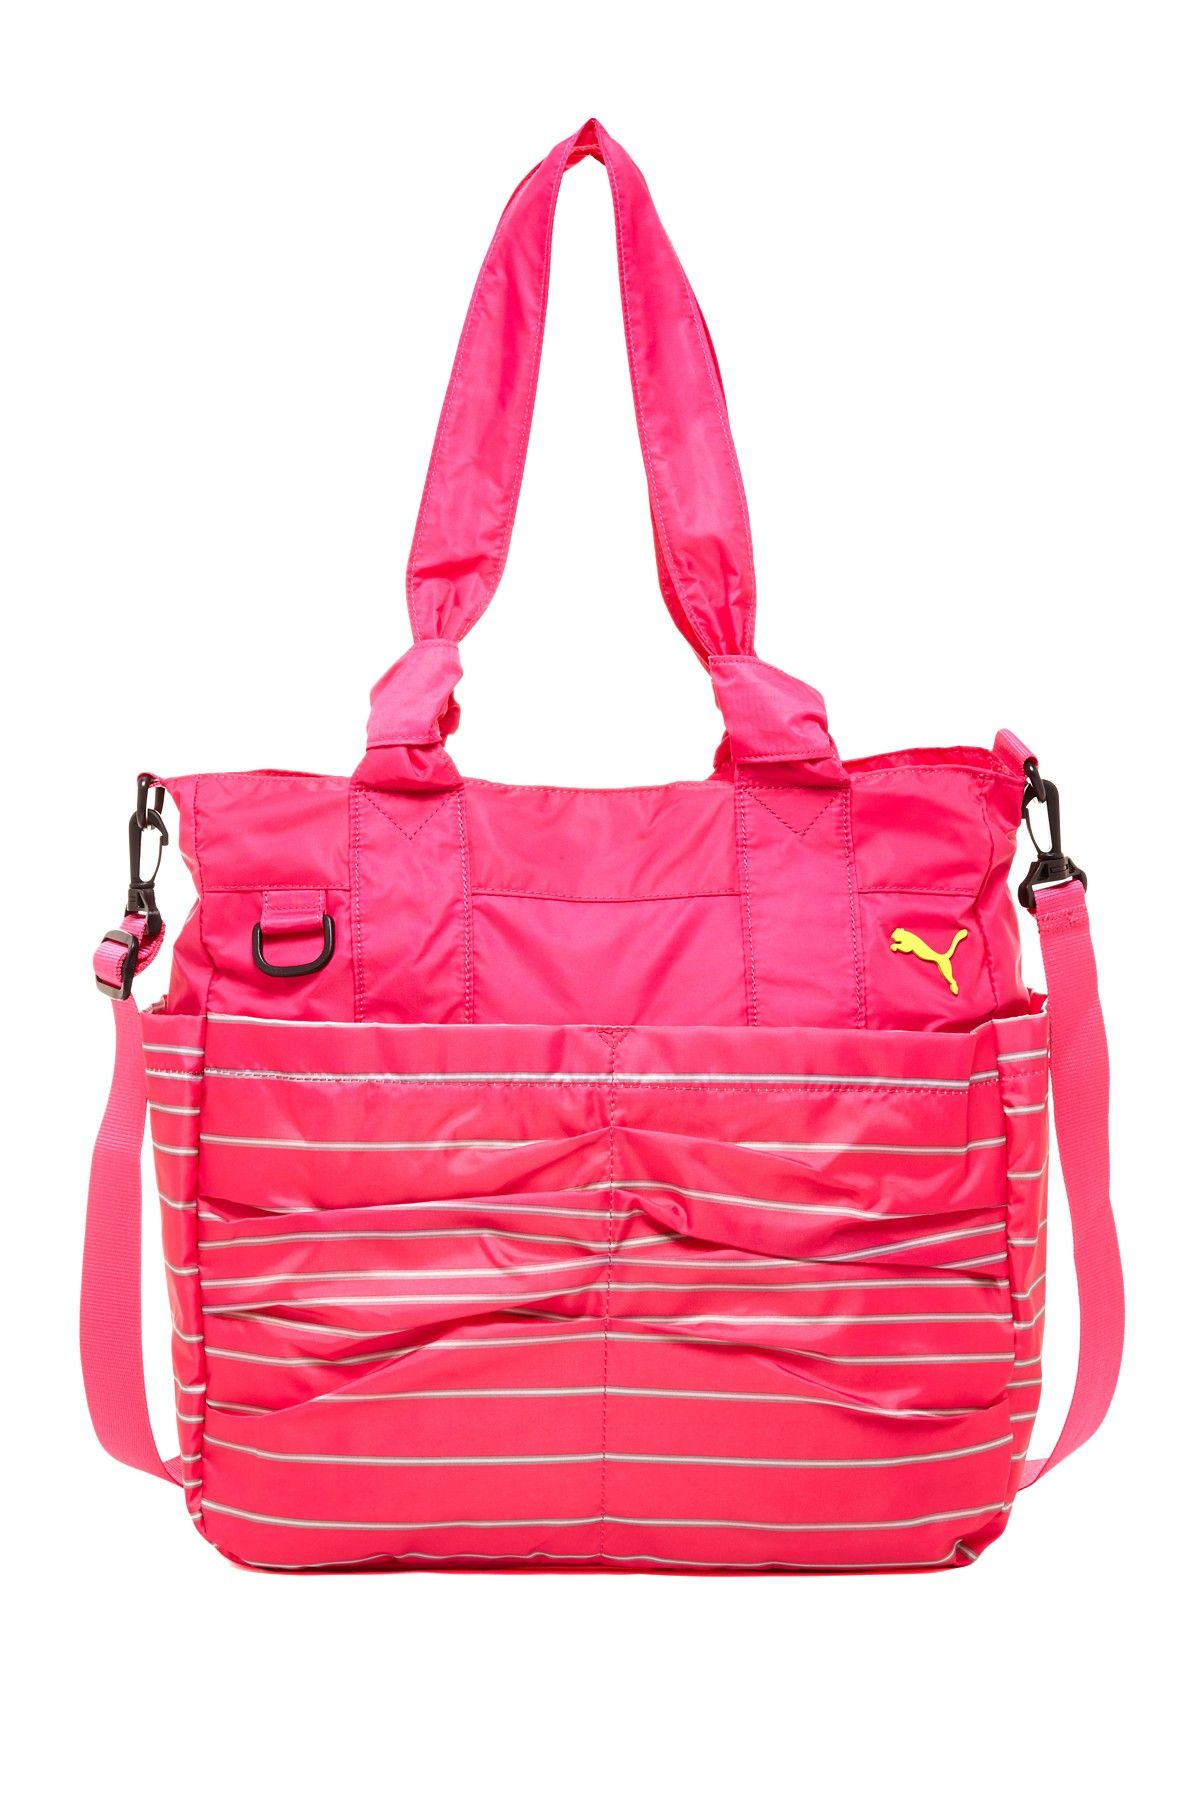 Studio Tote Bag by PUMA on  nordstrom rack 2d8c0019a223d